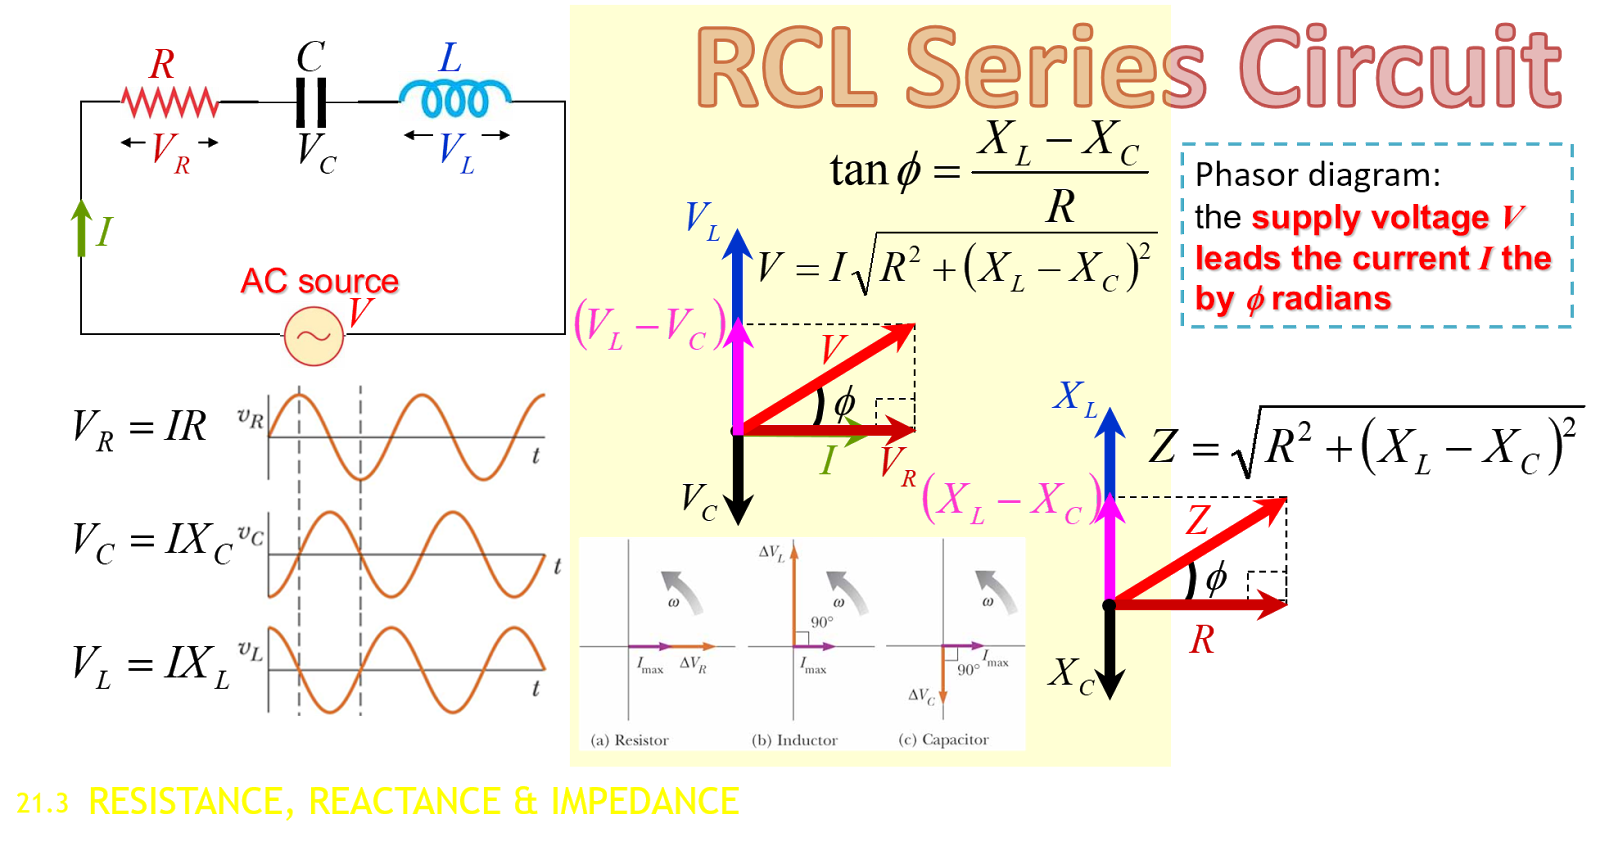 Sf026 Rohit Ac 3 Rc Rl Rcl Circuits Resistive Series Parallel Rlc Circuit Graphic At February 11 2018